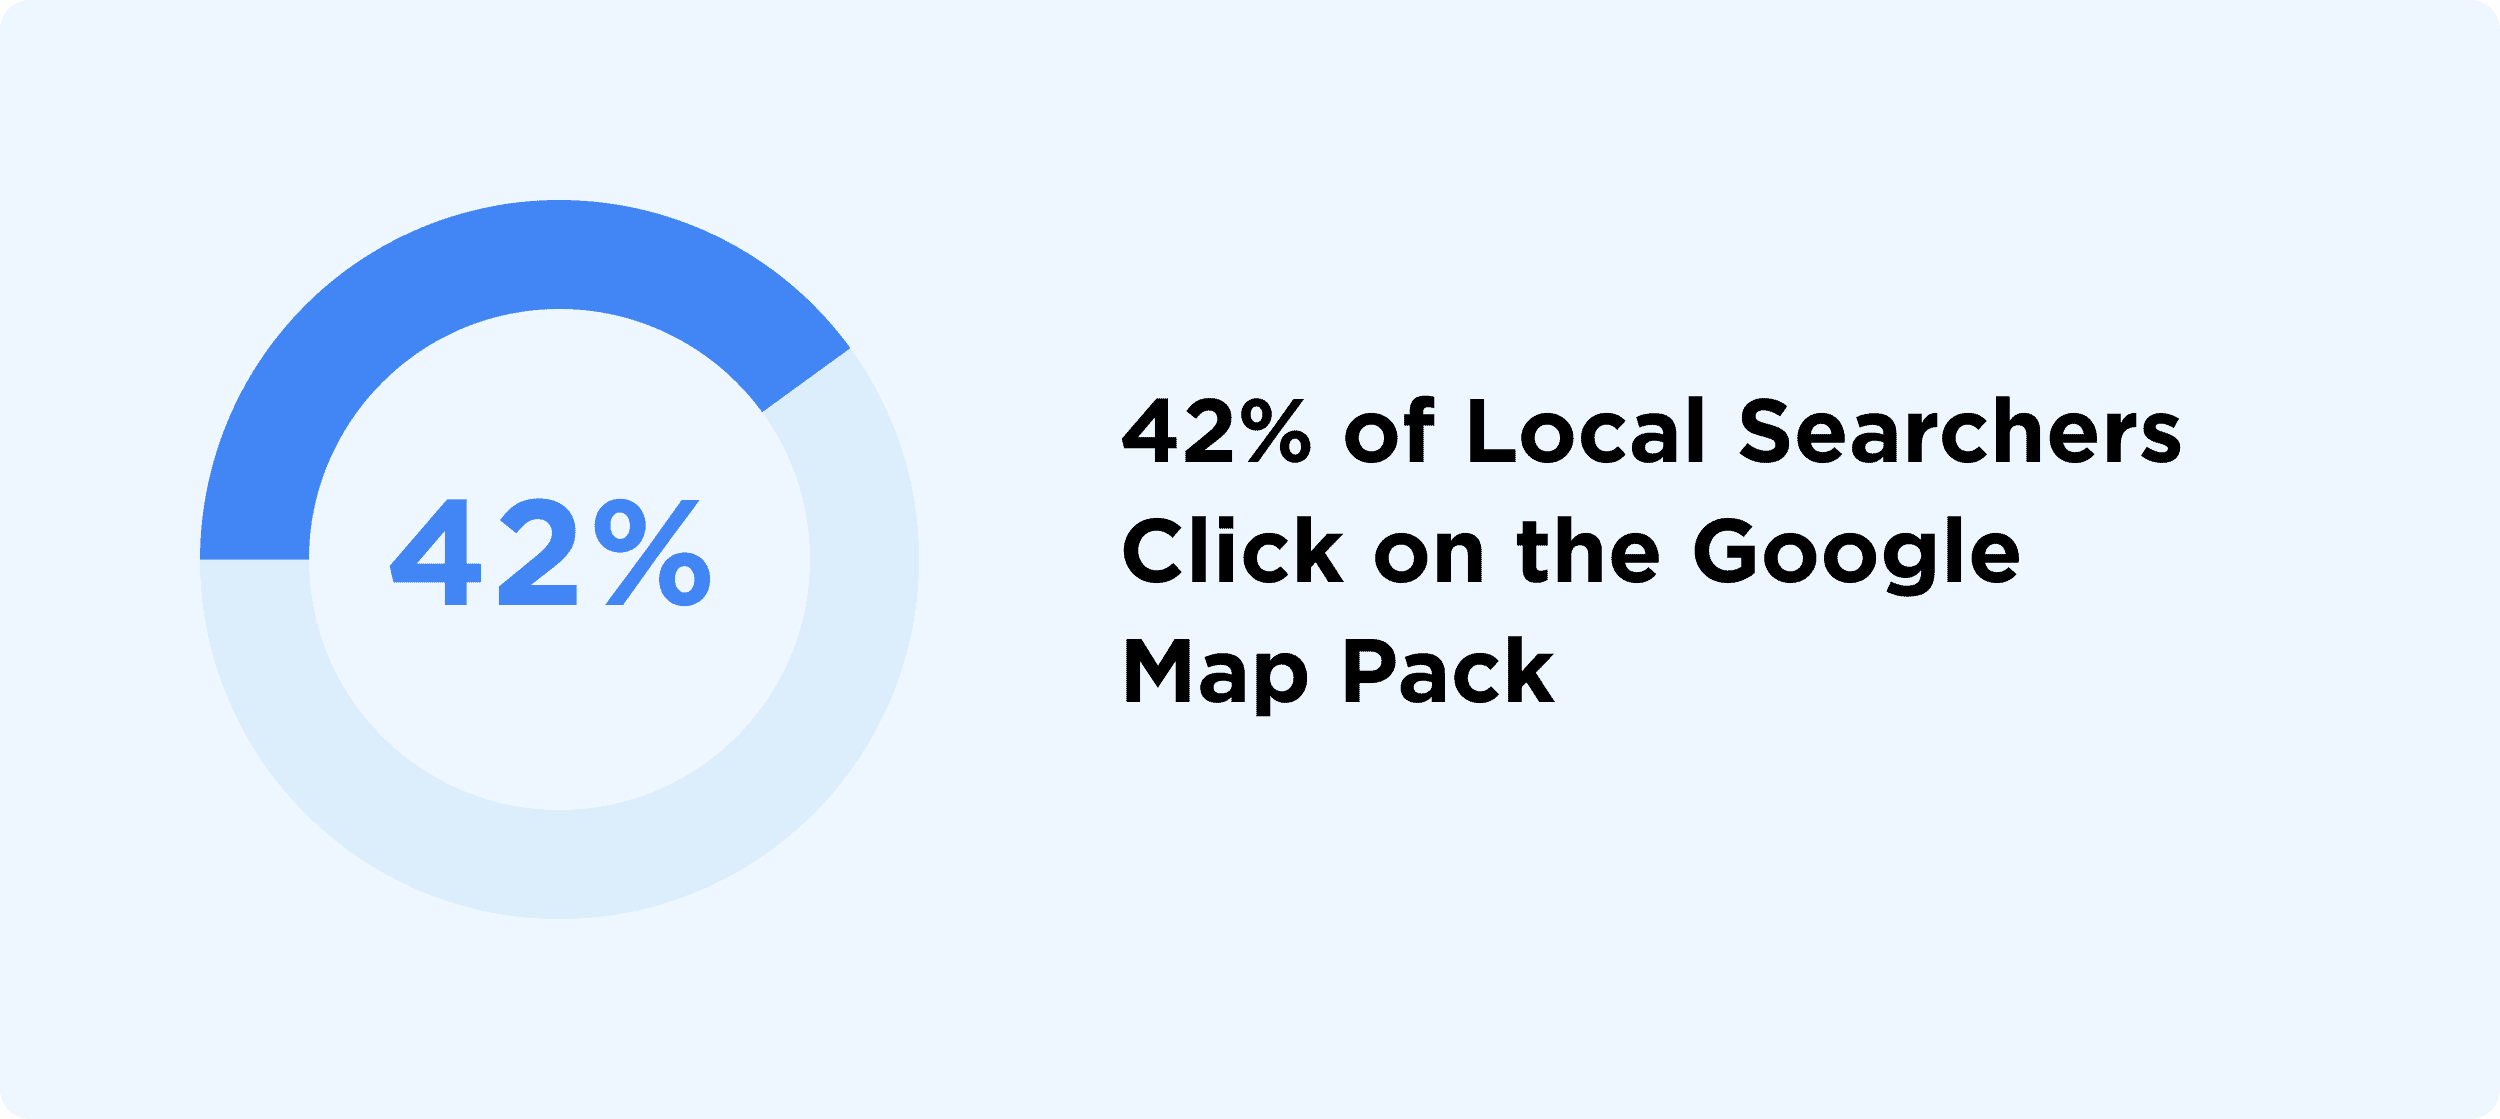 42% of Local Searchers Click On the Google Map Pack